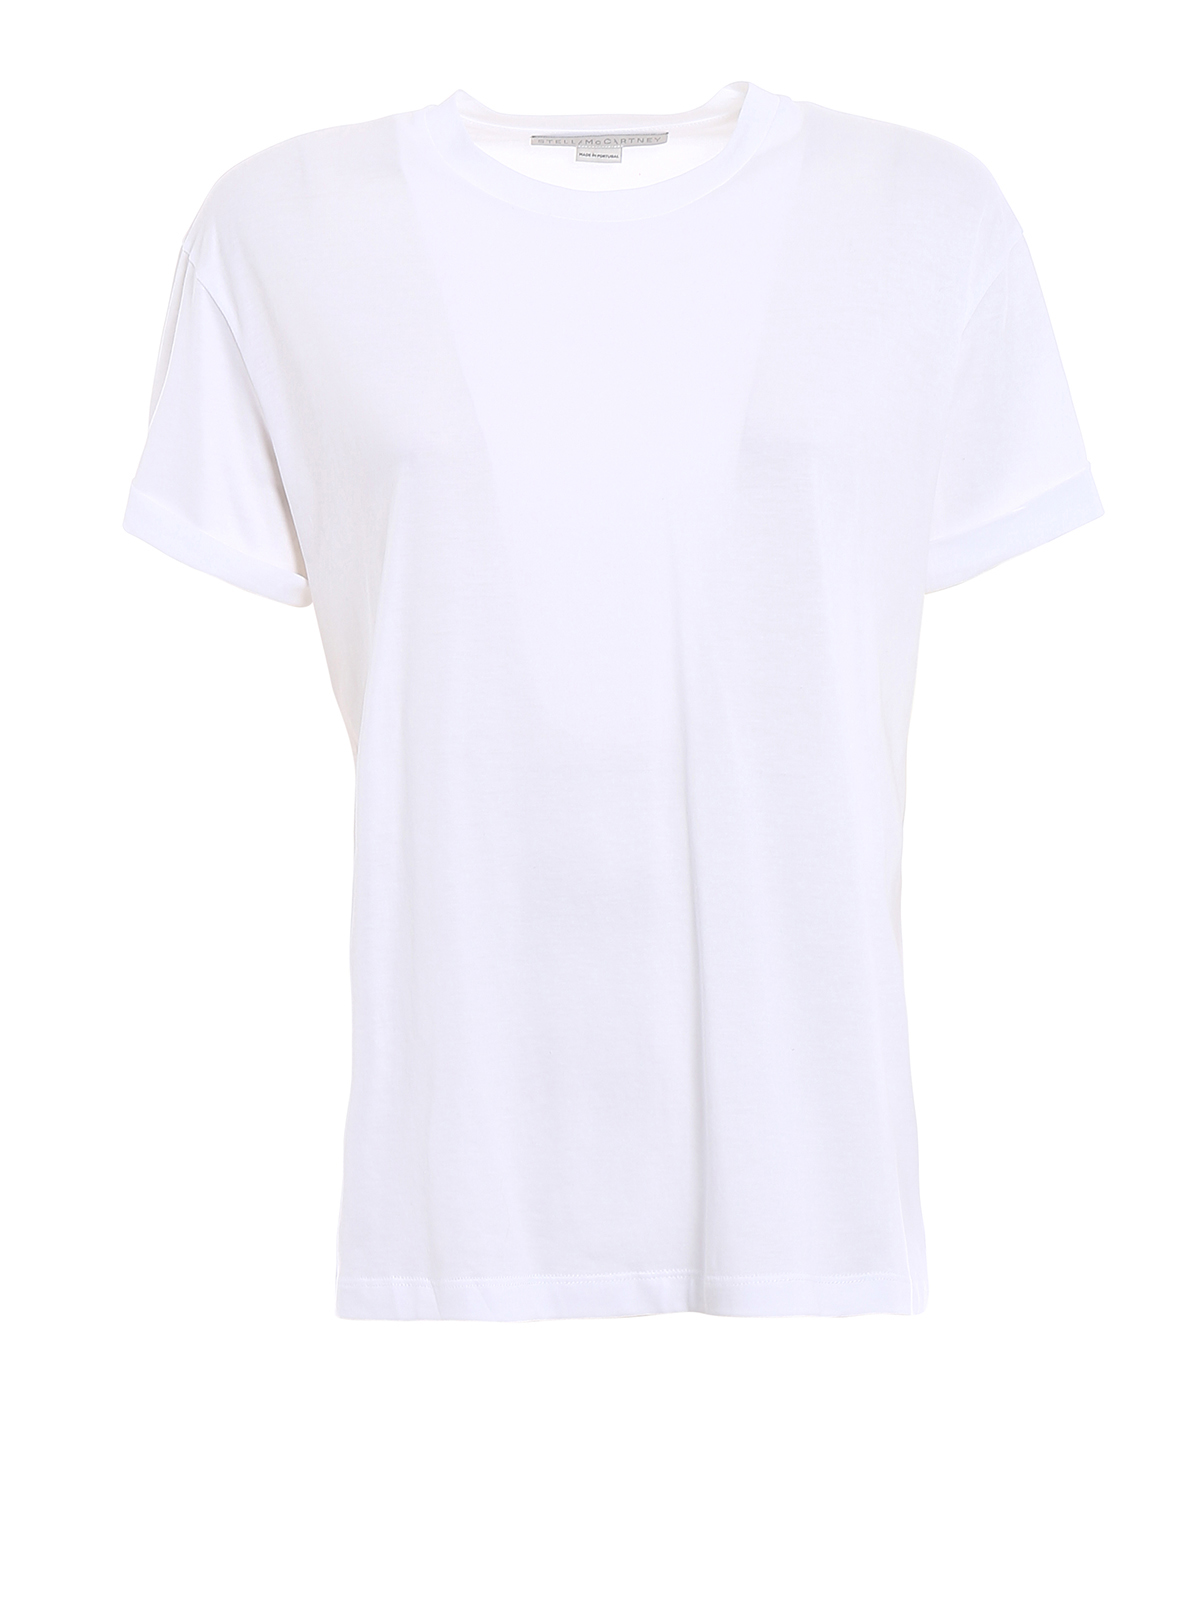 White t shirt with back logo print by stella mccartney t for Stella mccartney t shirt